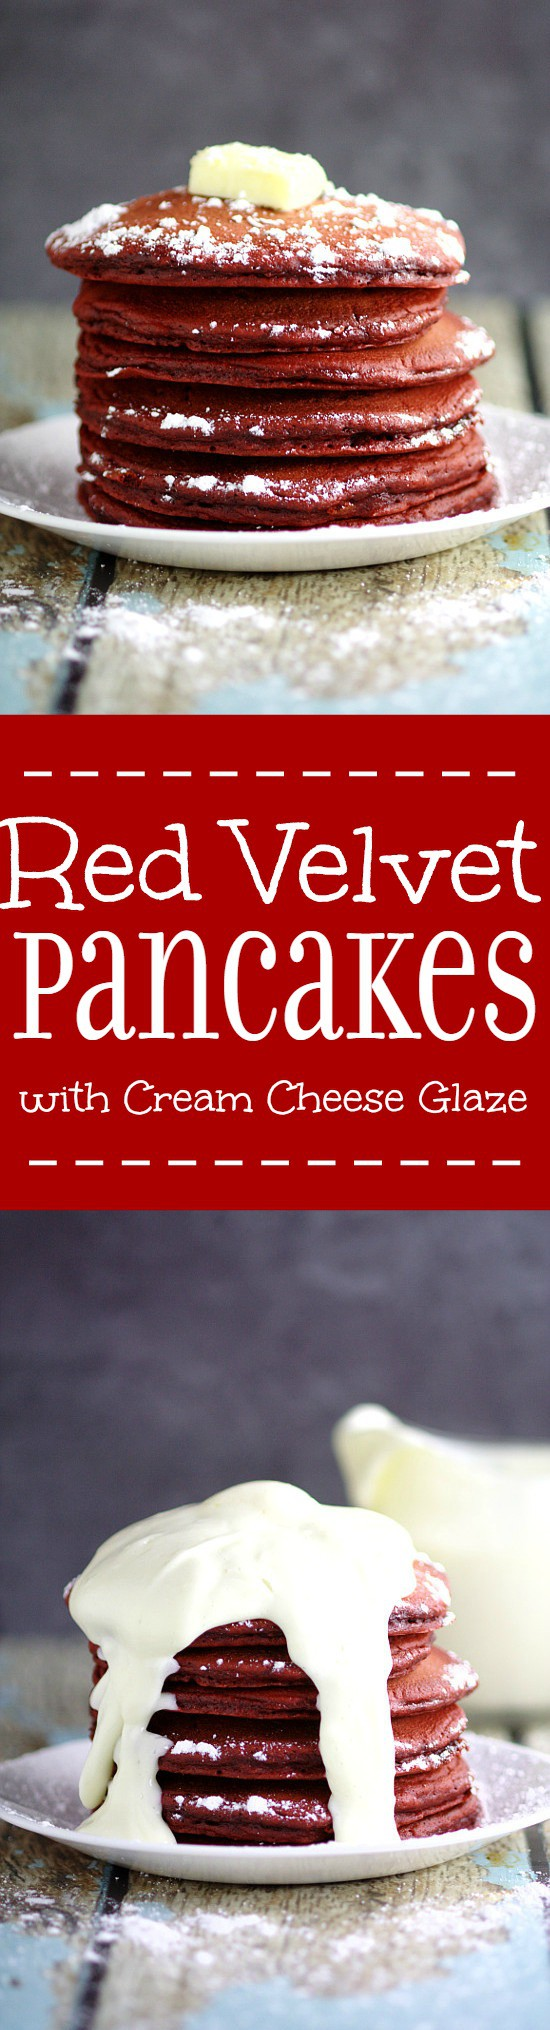 Red Velvet Pancakes with Cream Cheese Glaze make a delicious and decadent Valentine's Day breakfast recipe. Red Velvet Pancakes made from a box cake mix topped with a creamy, simple cream cheese glaze. Couldn't be a more delicious way to start the day!